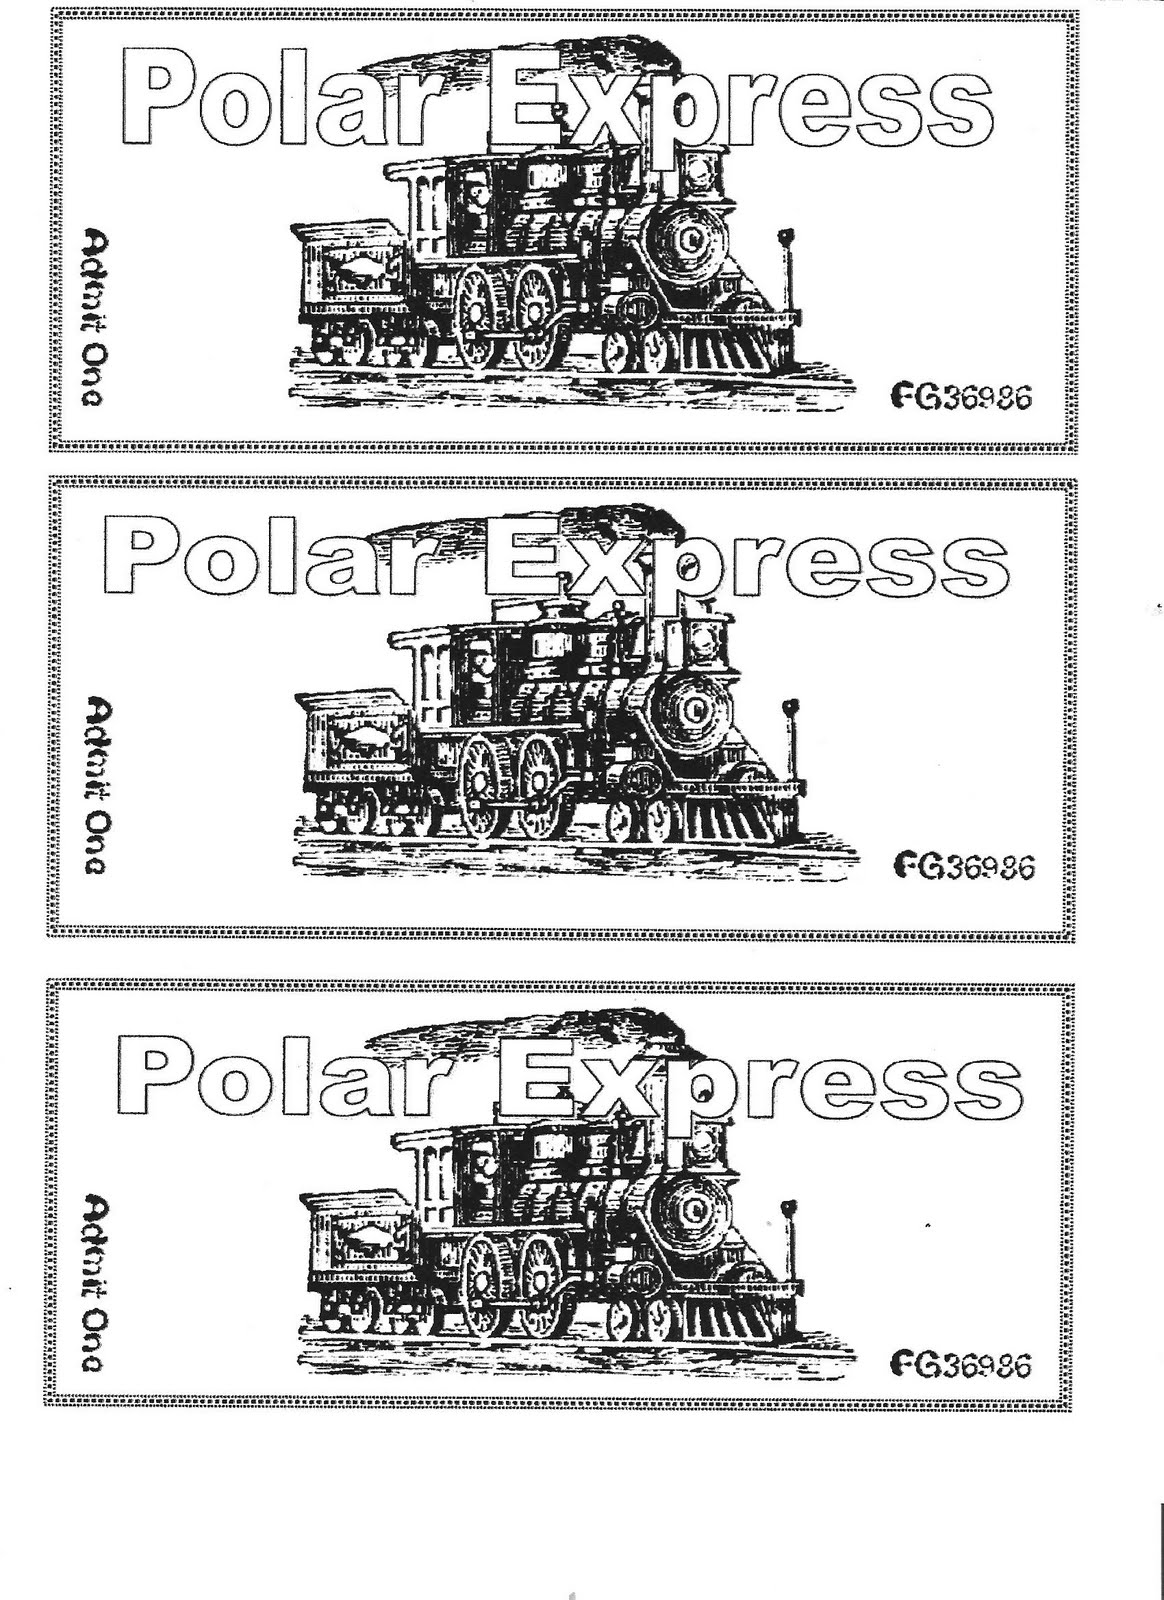 Printable Sheet Of A Polar Express Believe Tickets Pictures to Pin – Polar Express Worksheets